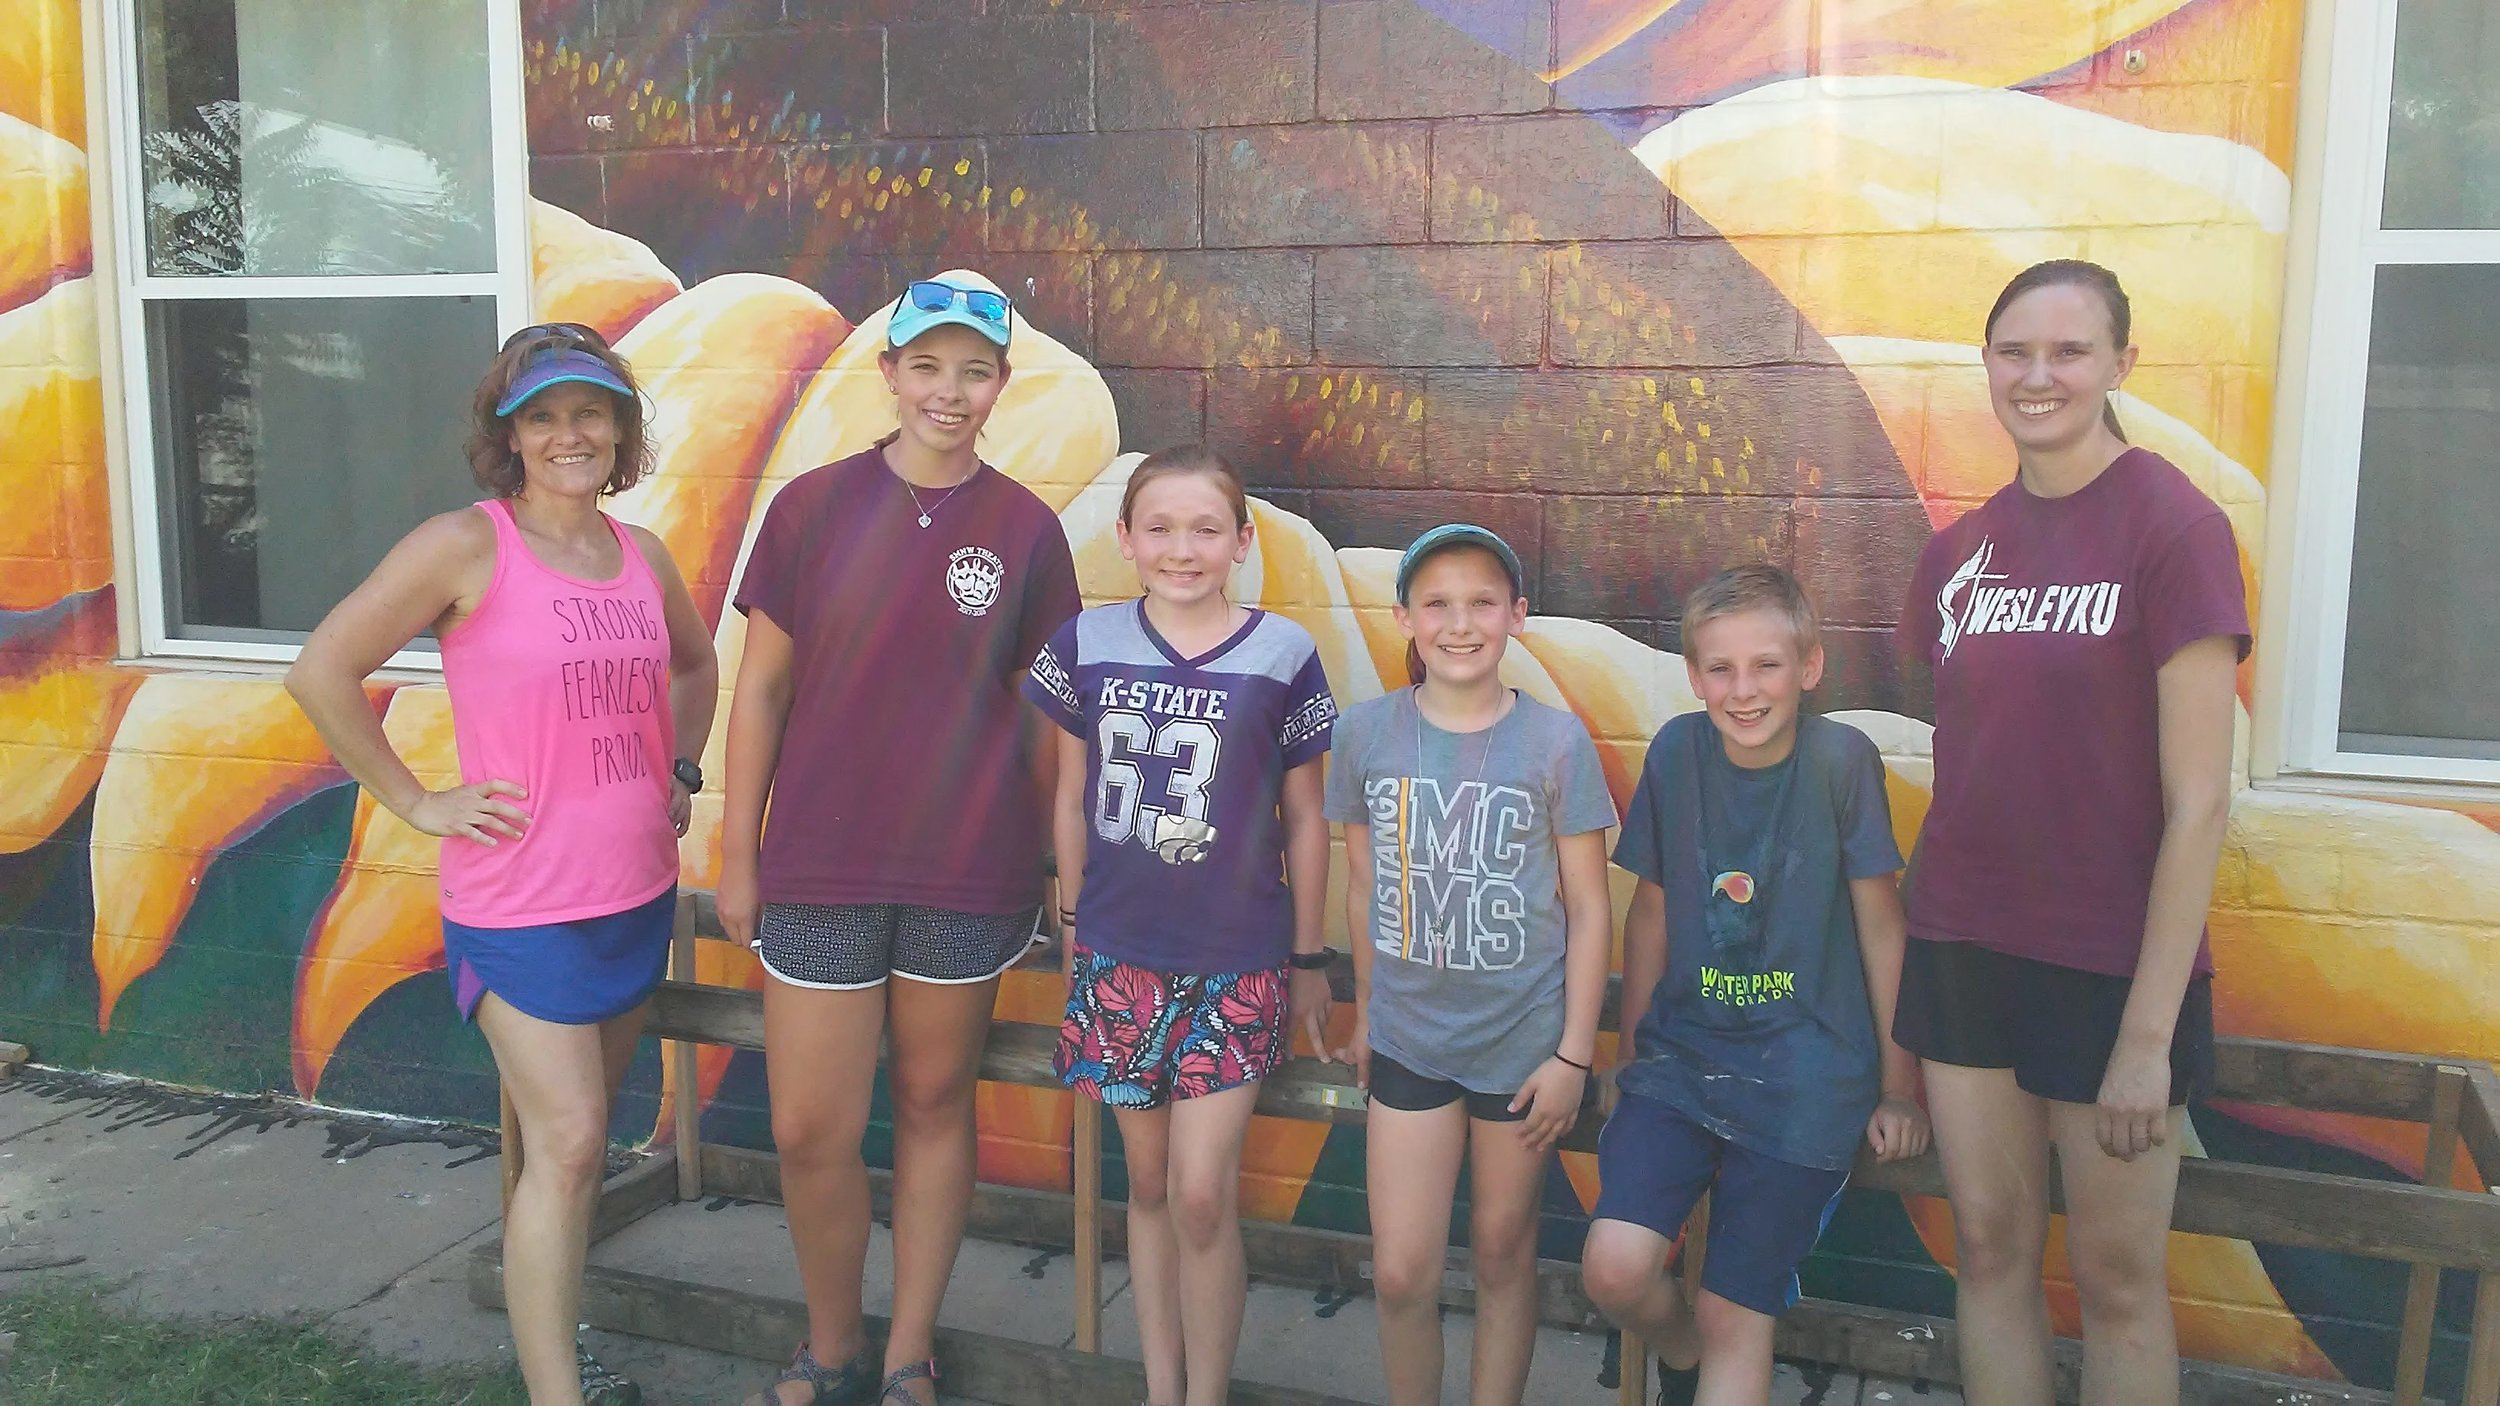 The traditional group photo in front of the beautiful sunflower mural!